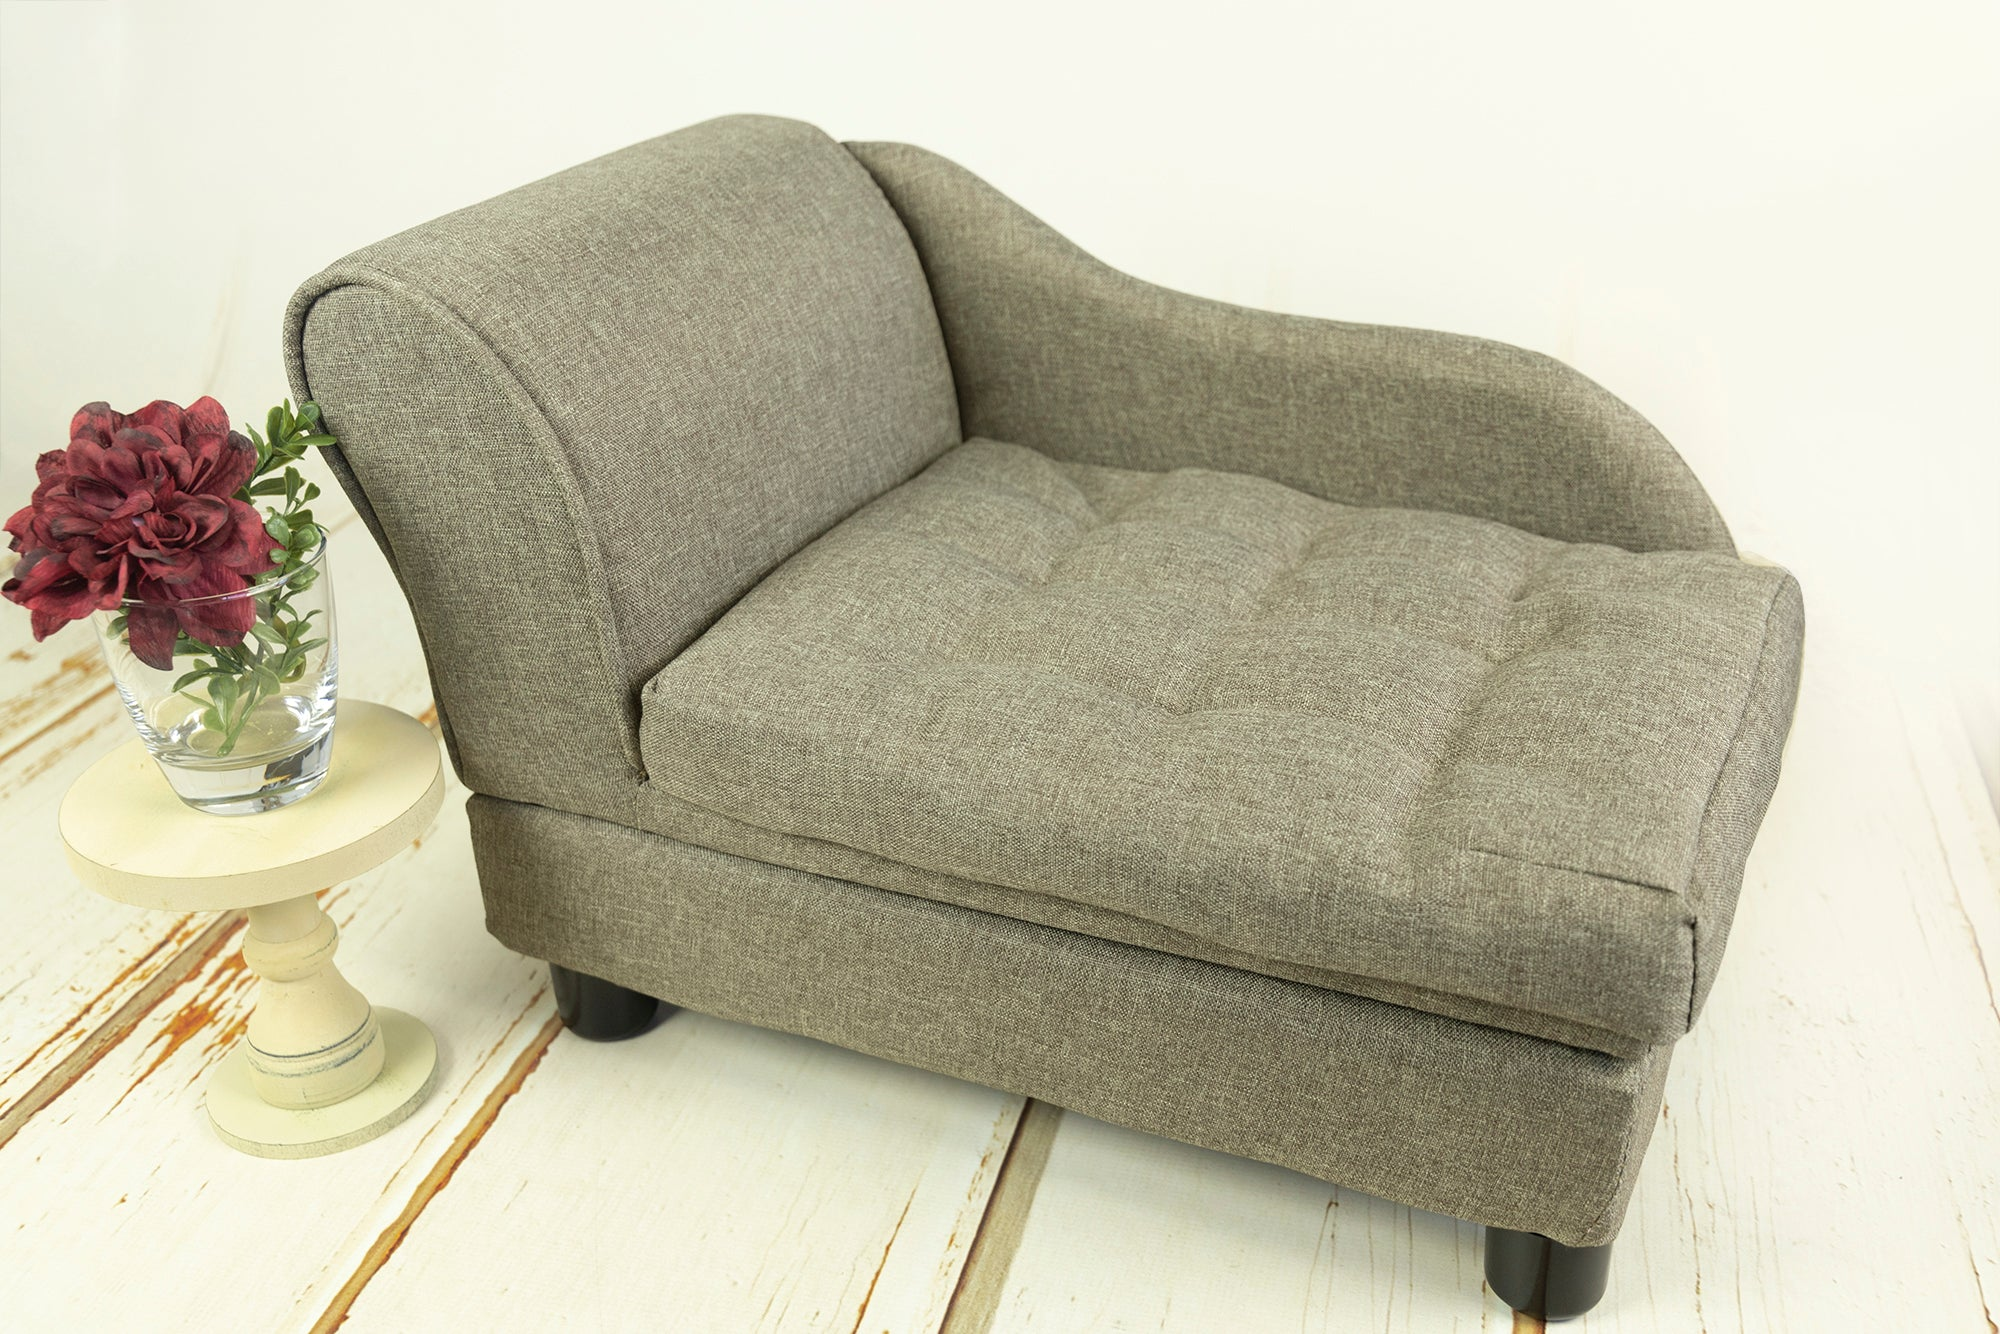 Mini Sofa - Model 8 - Twotone Nut